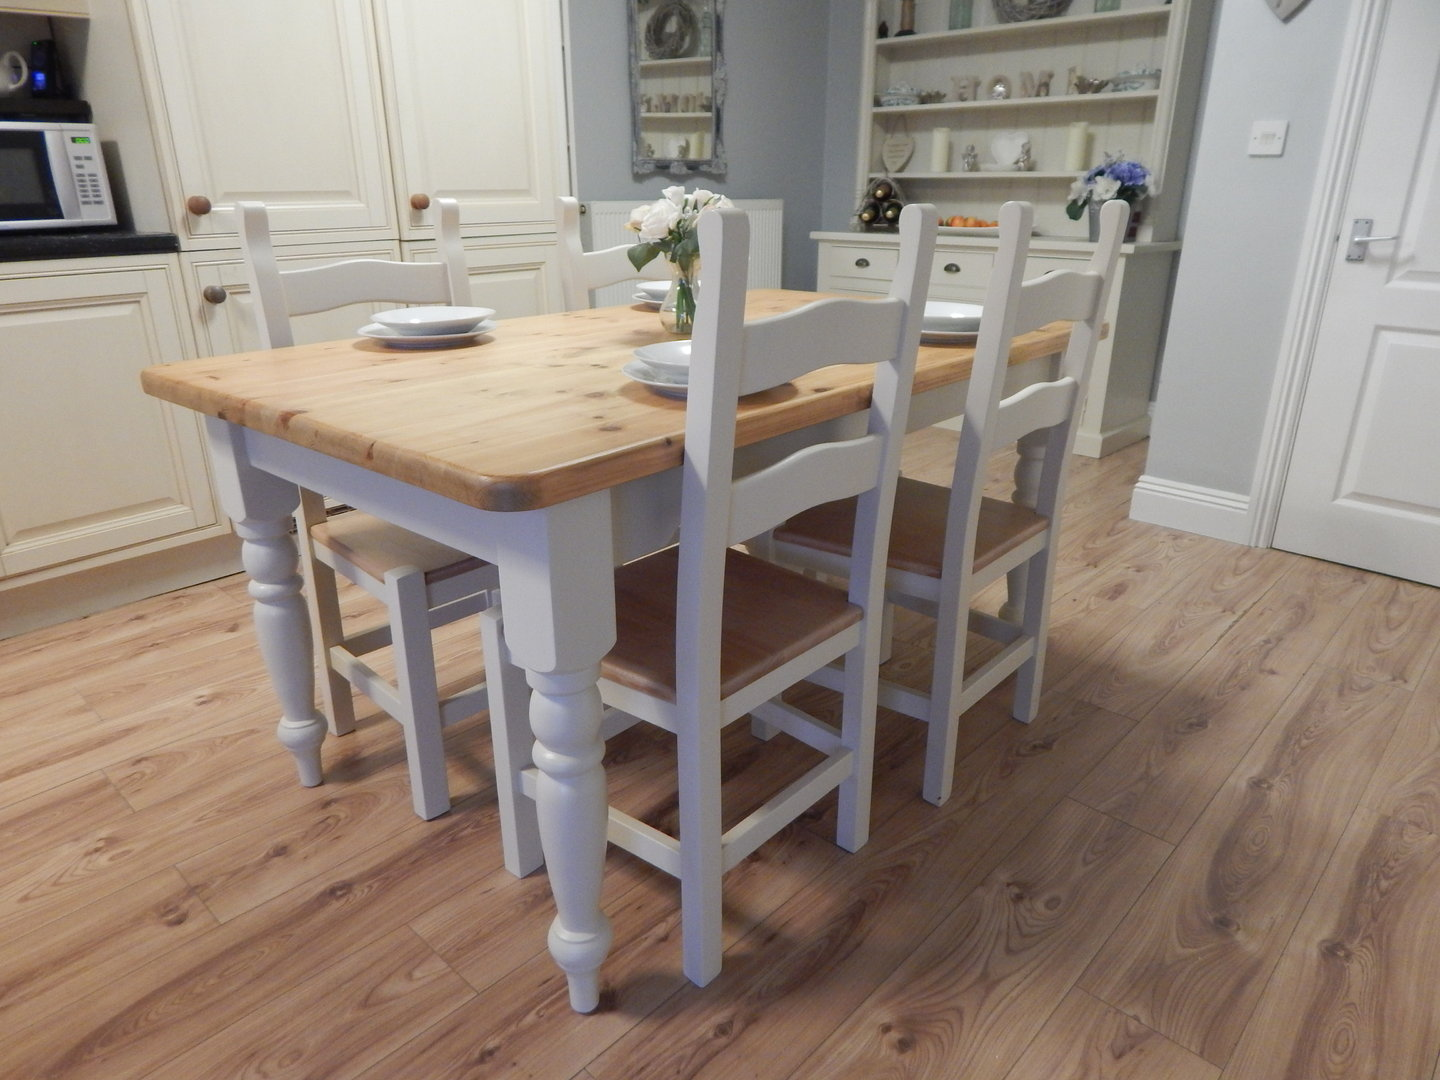 Gorgeous Vintage Country Farmhouse Pine Dining Table 4 Chairs Sold Moonstripe